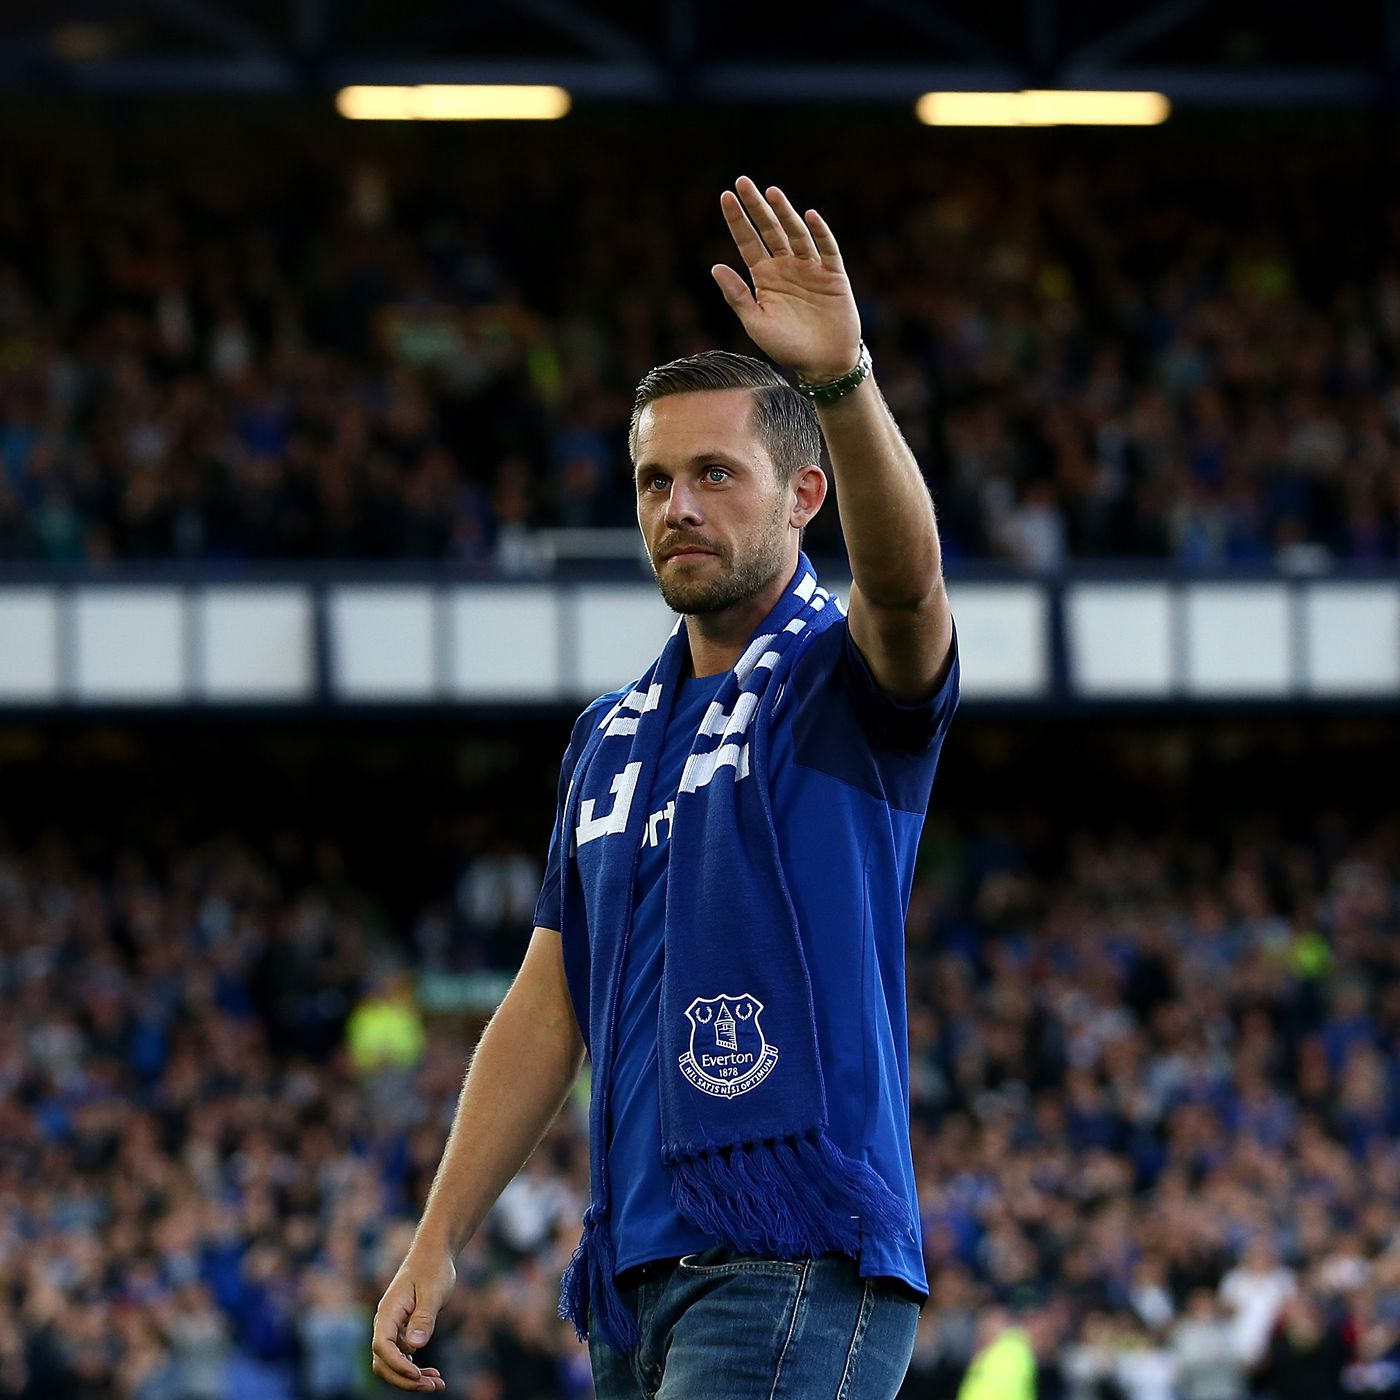 Everton F.C. vs. Tottenham Hotspur: match preview, projected lineups,  predictions, and how to watch - Cartilage Free Captain